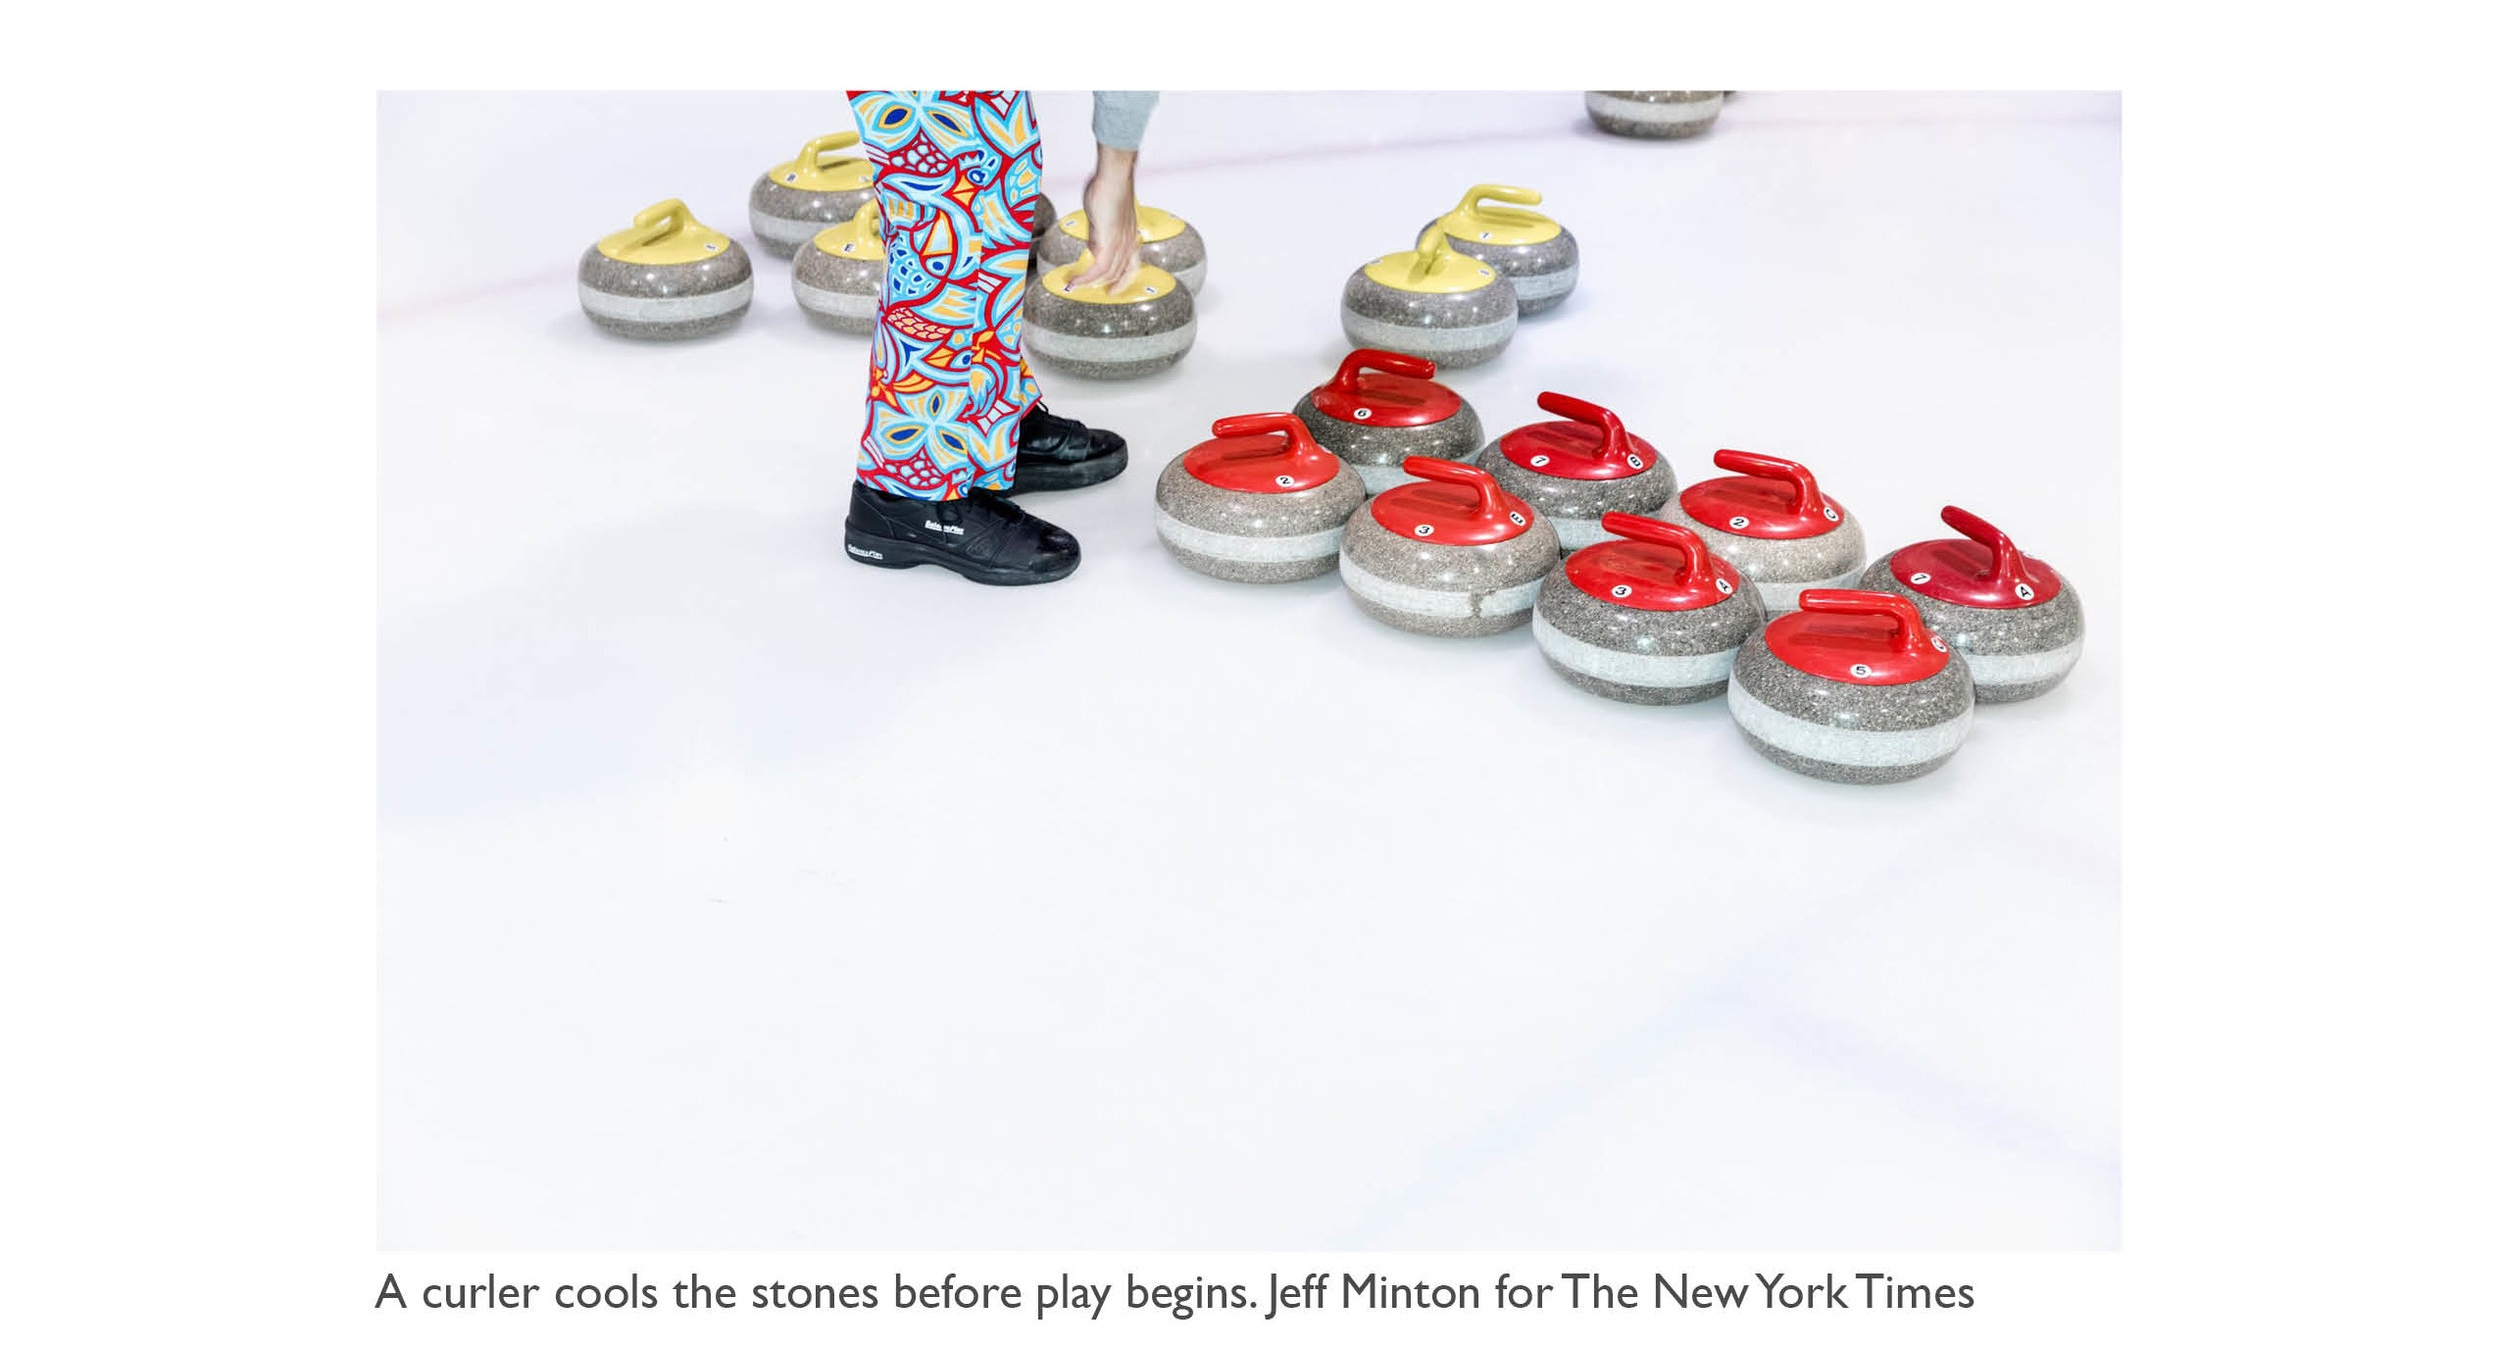 curlingpic.jpg